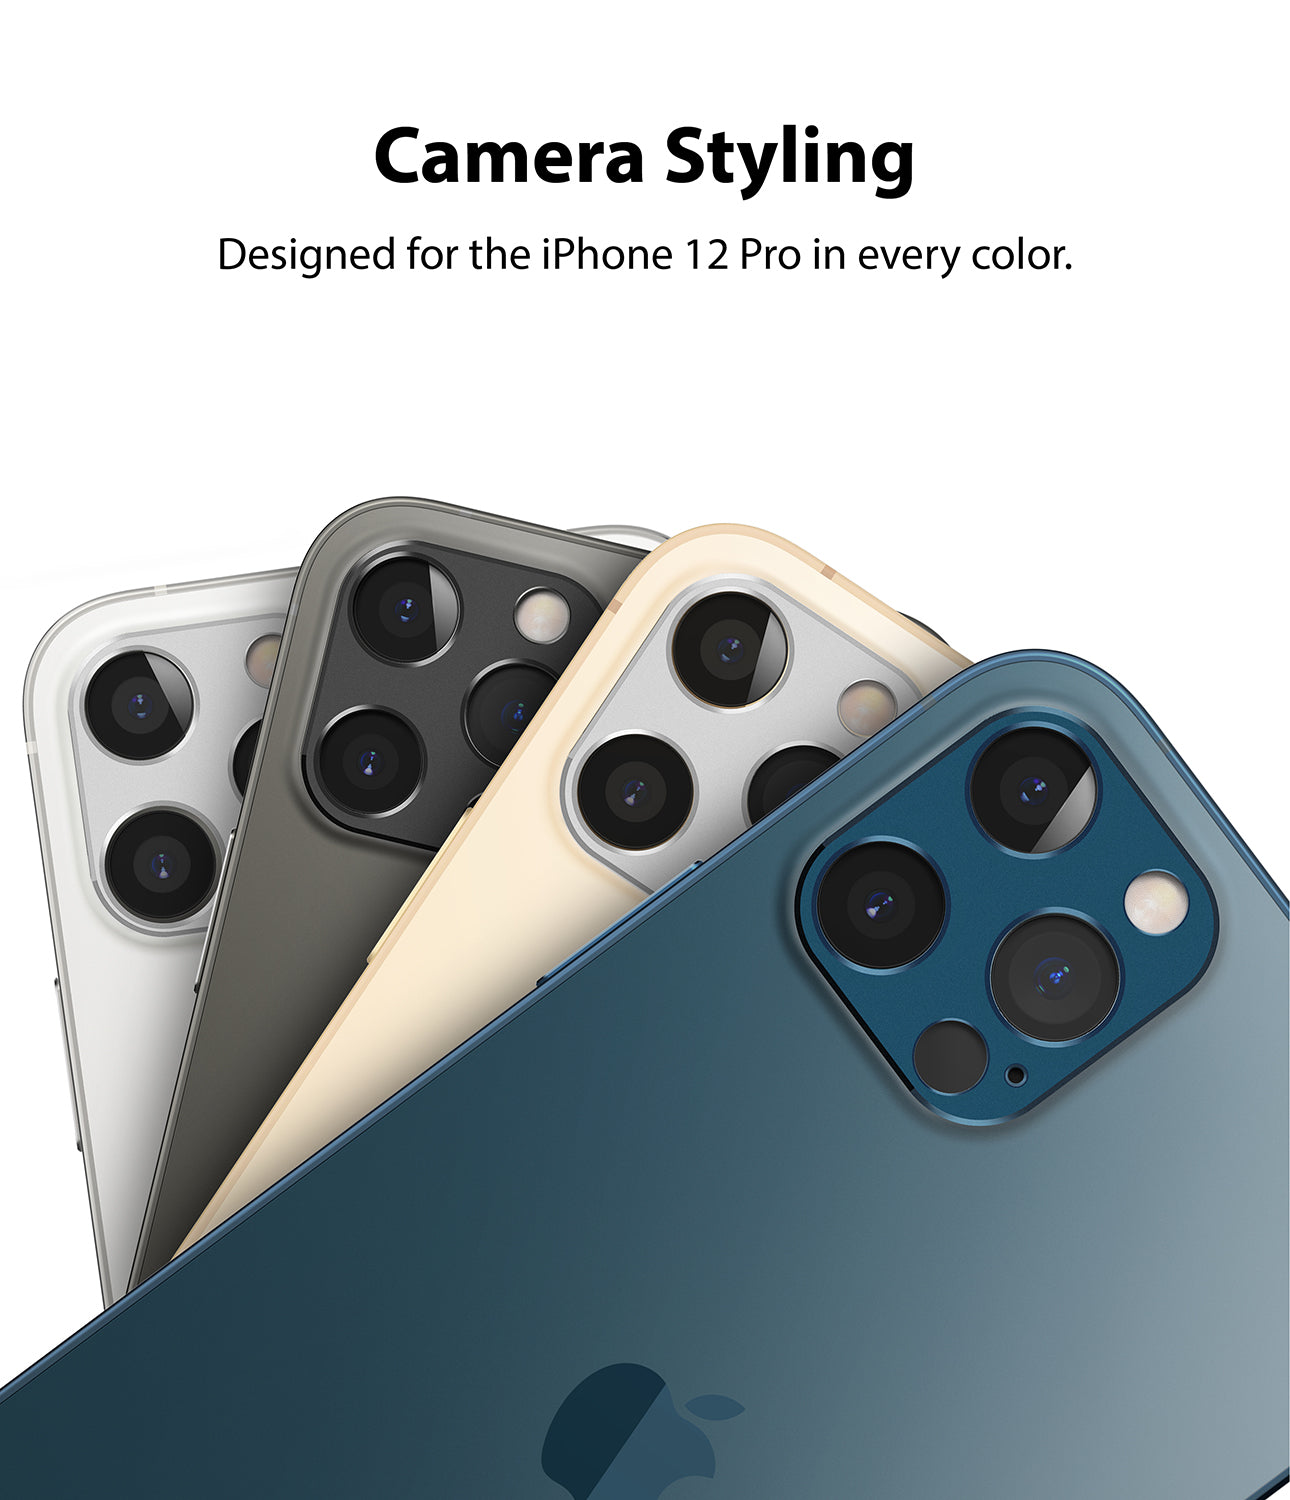 ringke camera styling for iphone 12 pro